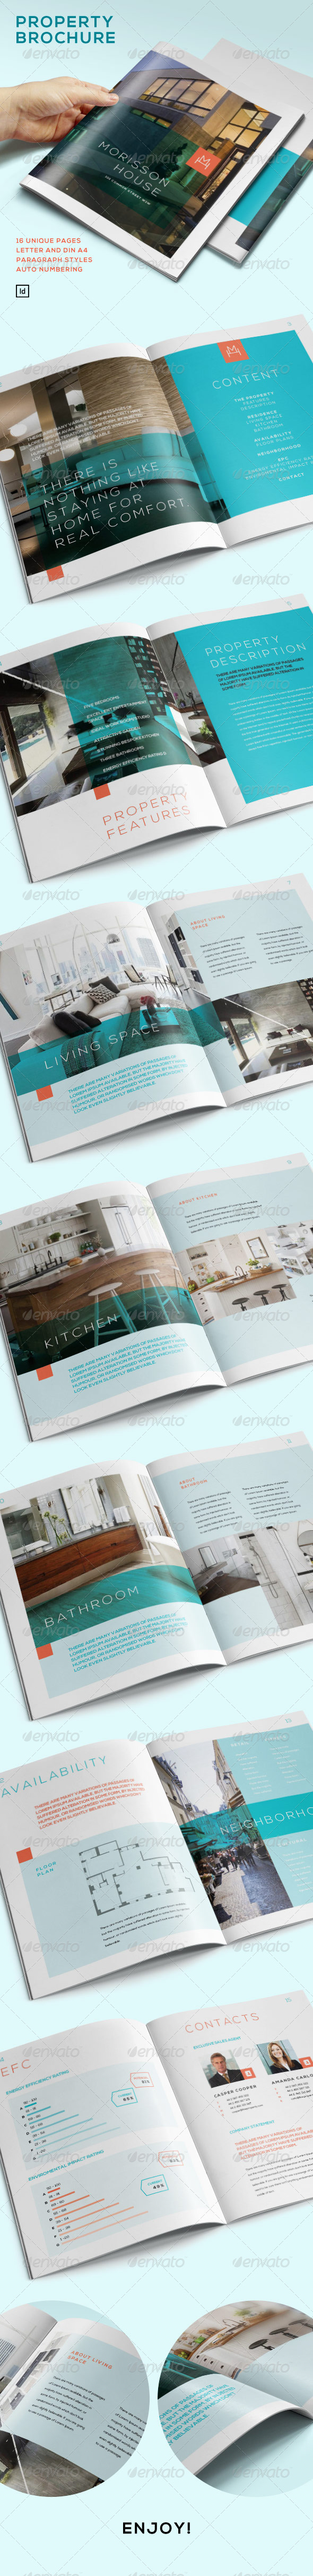 GraphicRiver Property Brochure 7223118